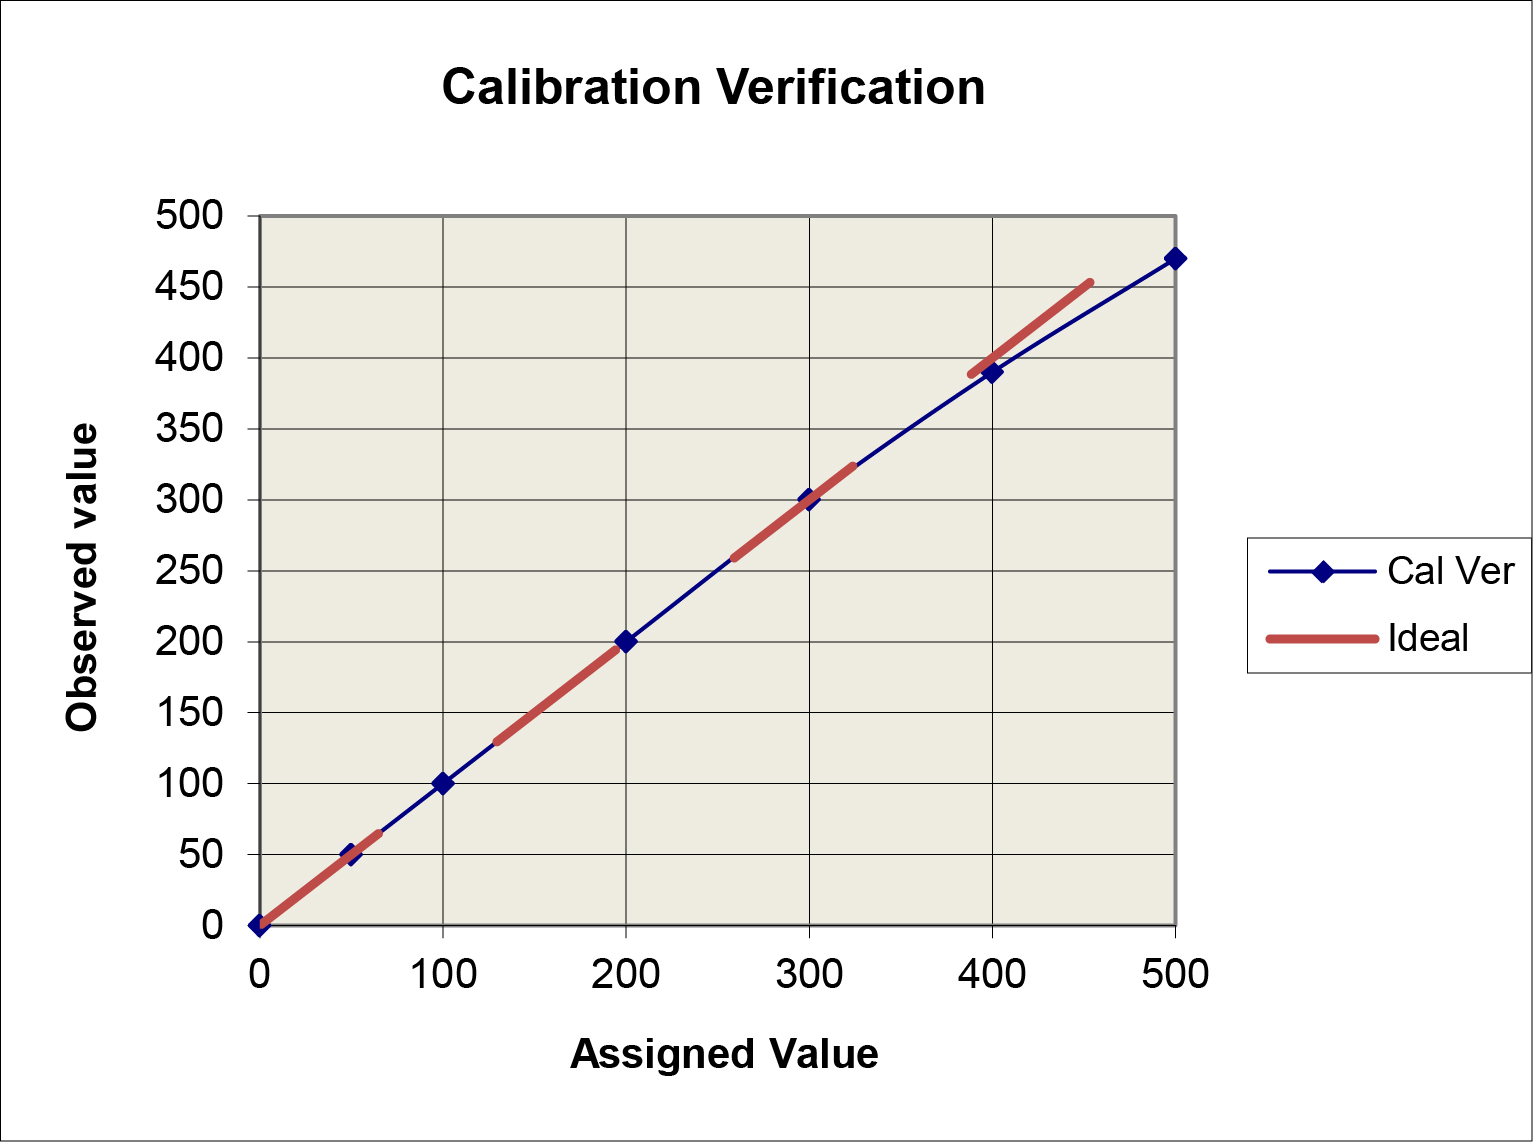 Calibration Verification Simple Graph